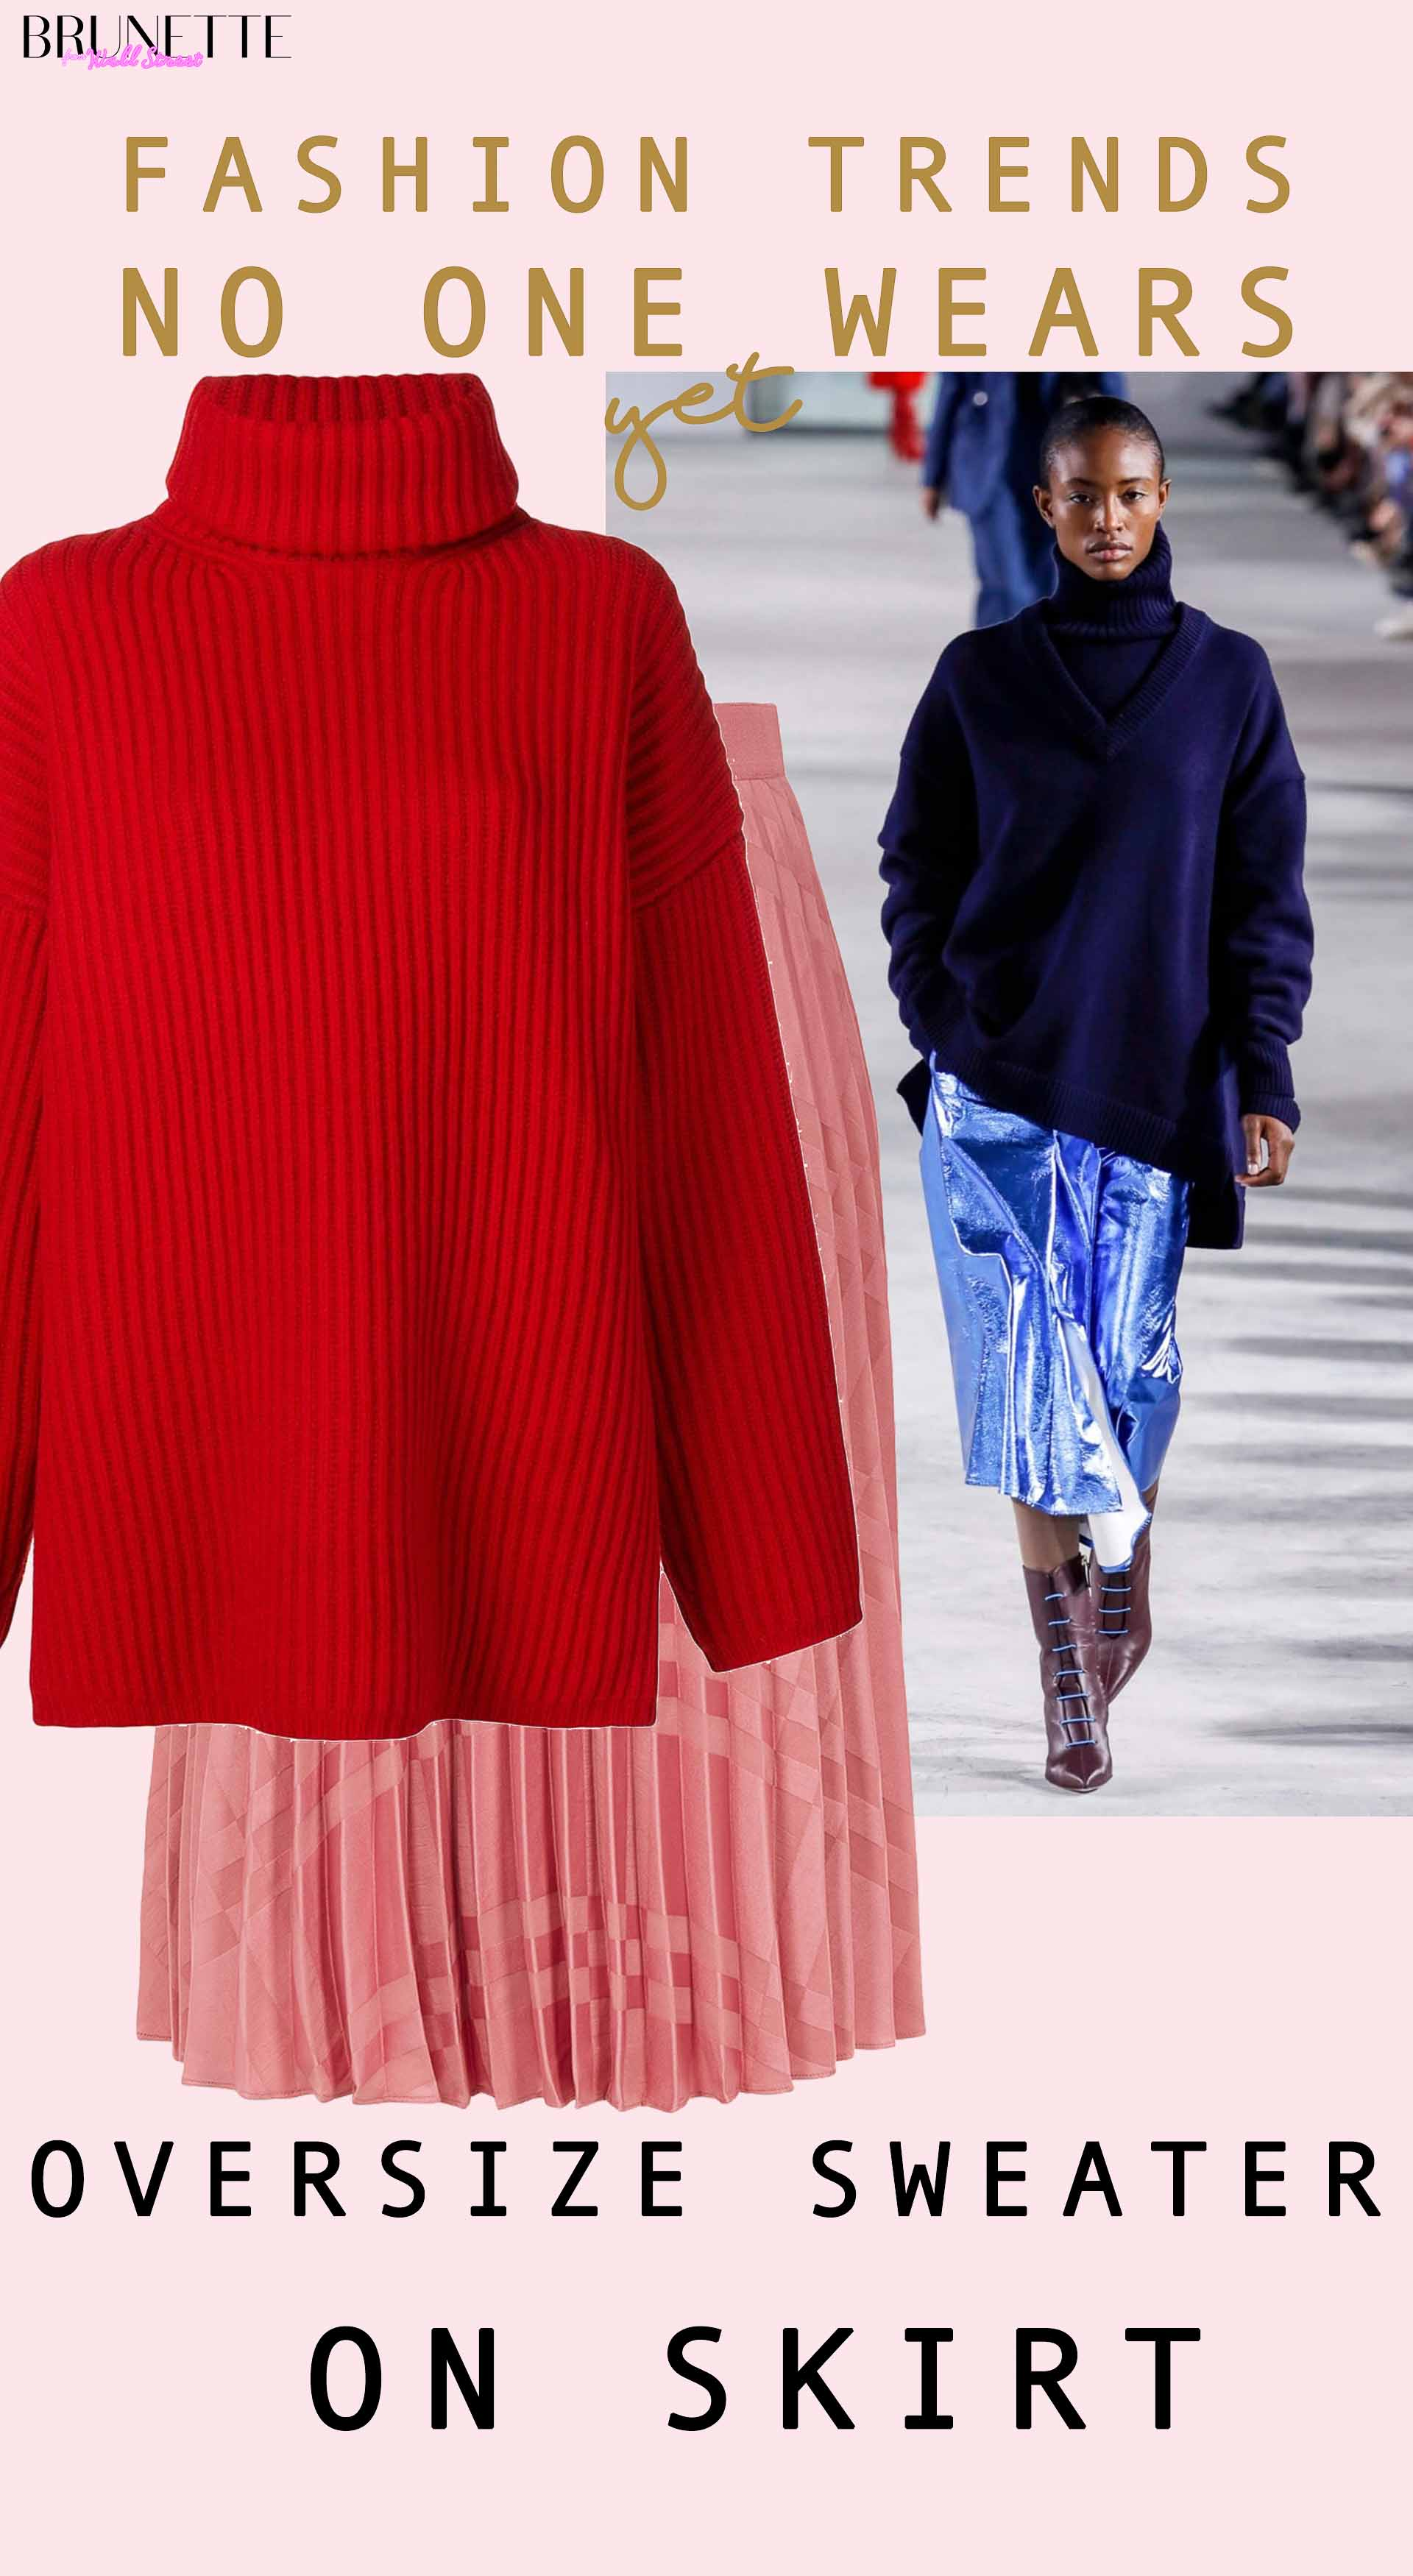 Oversize Sweater On Skirt Autumn Winter 2019 Fashion Trends No One